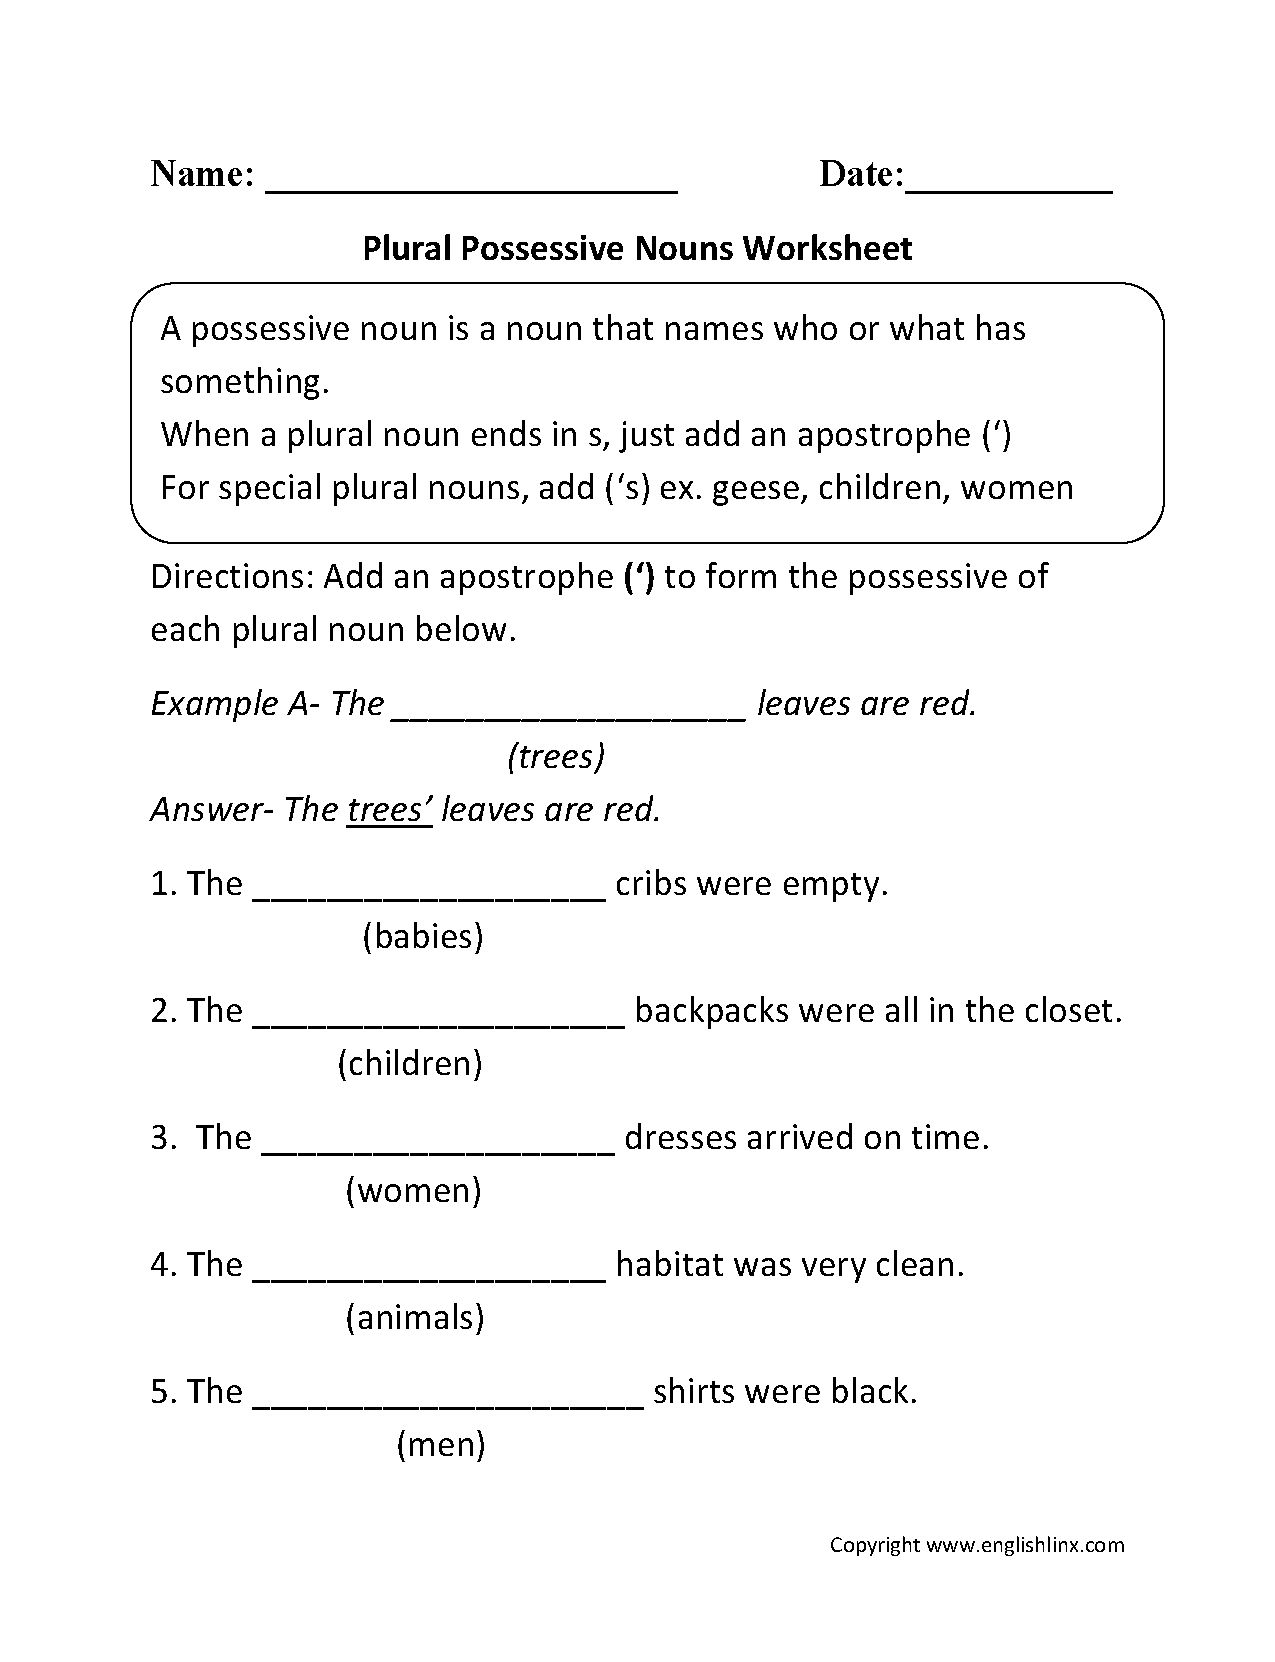 Pronoun Agreement Worksheet Printable Worksheets And Activities For Teachers Parents Tutors And Homeschool Families